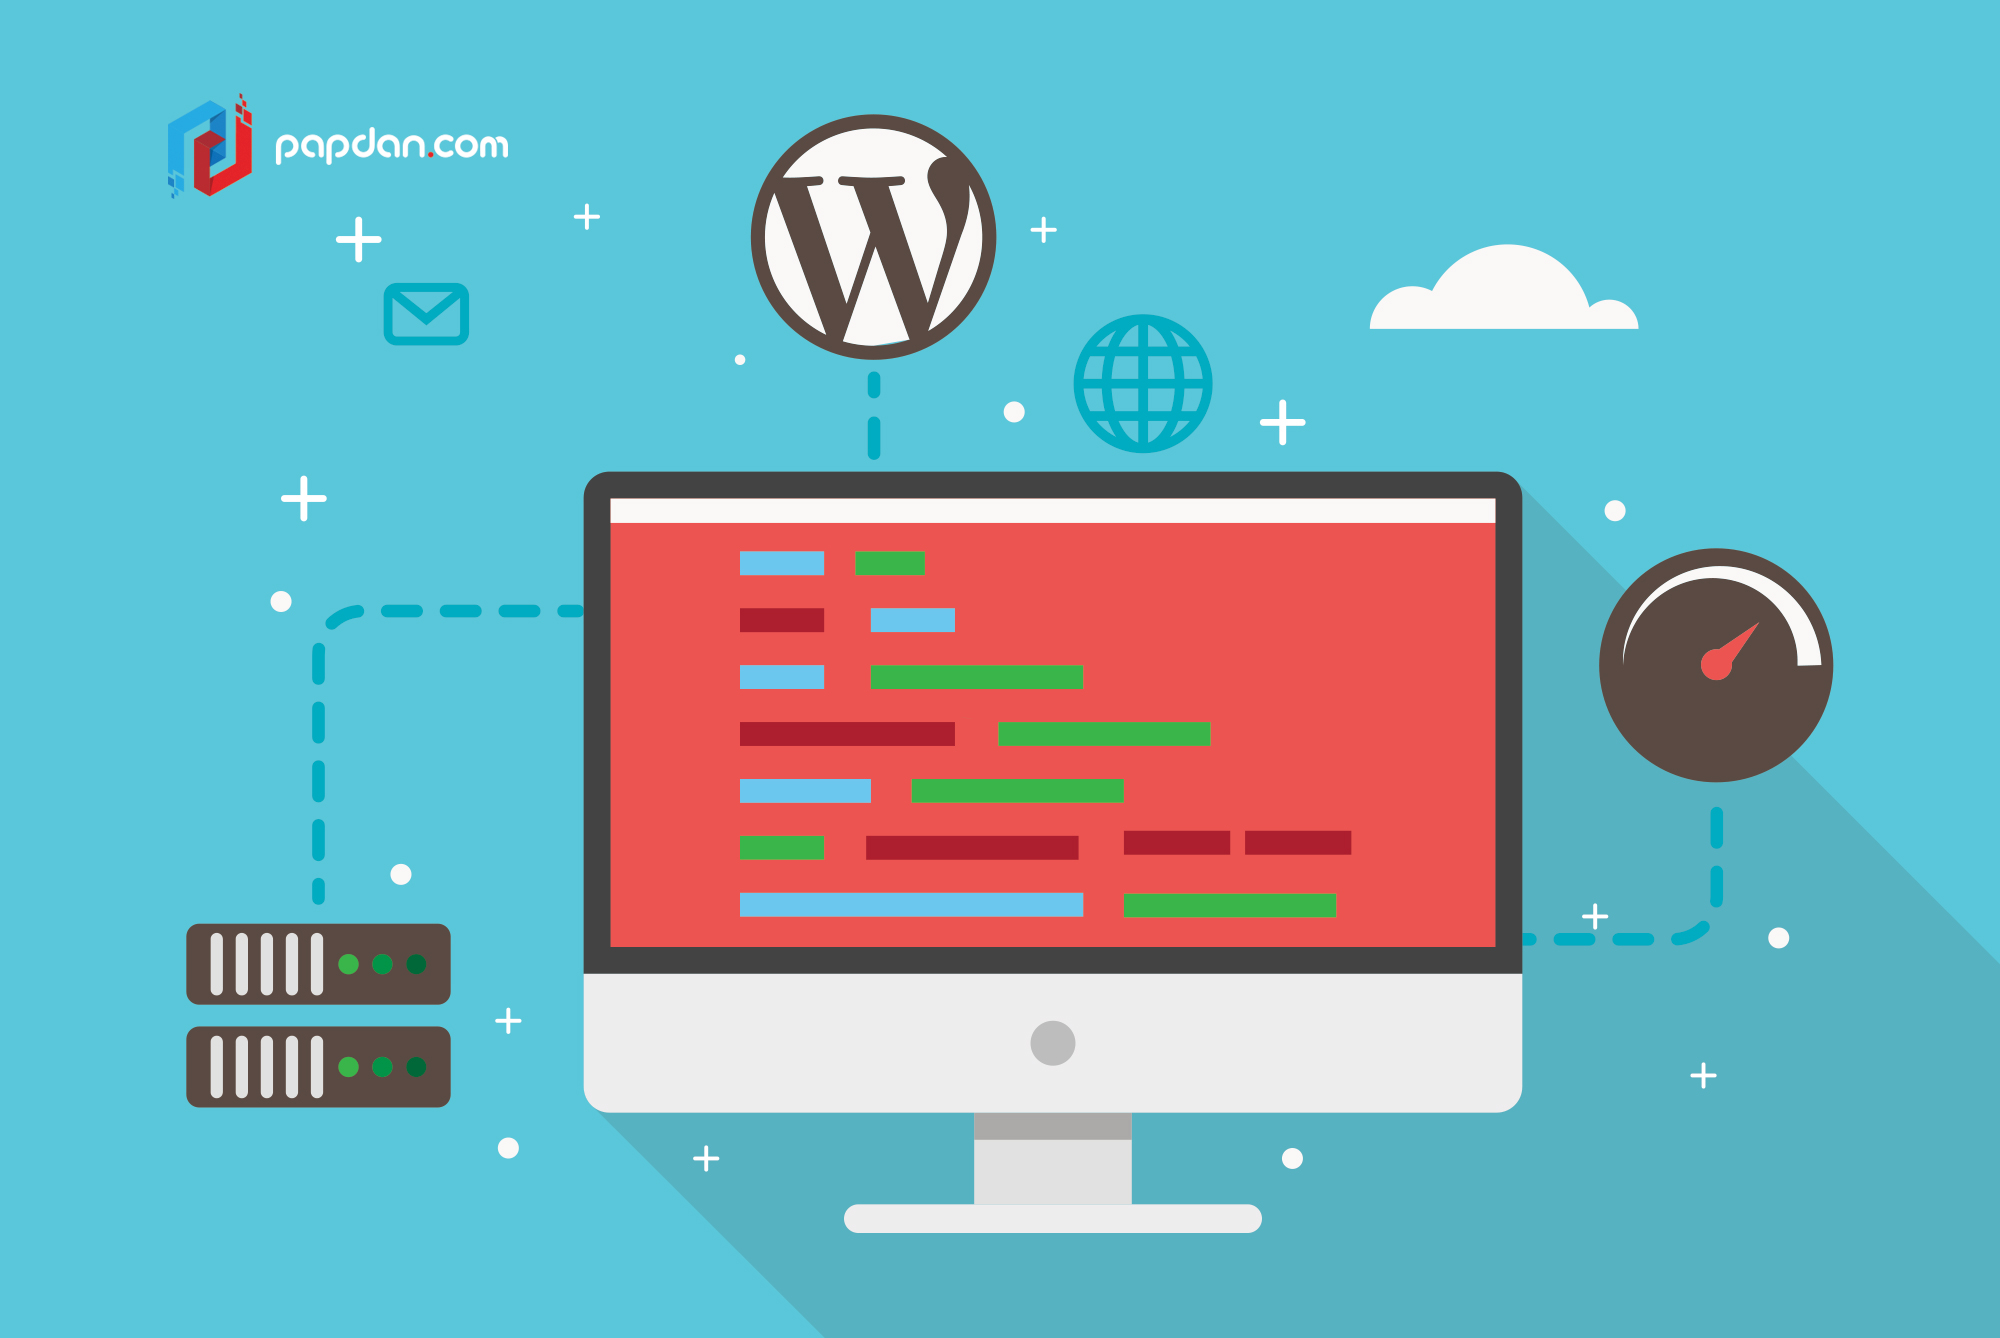 5 ways for Creating Better, Faster and More Optimized WordPress Websites - OnlineMagz